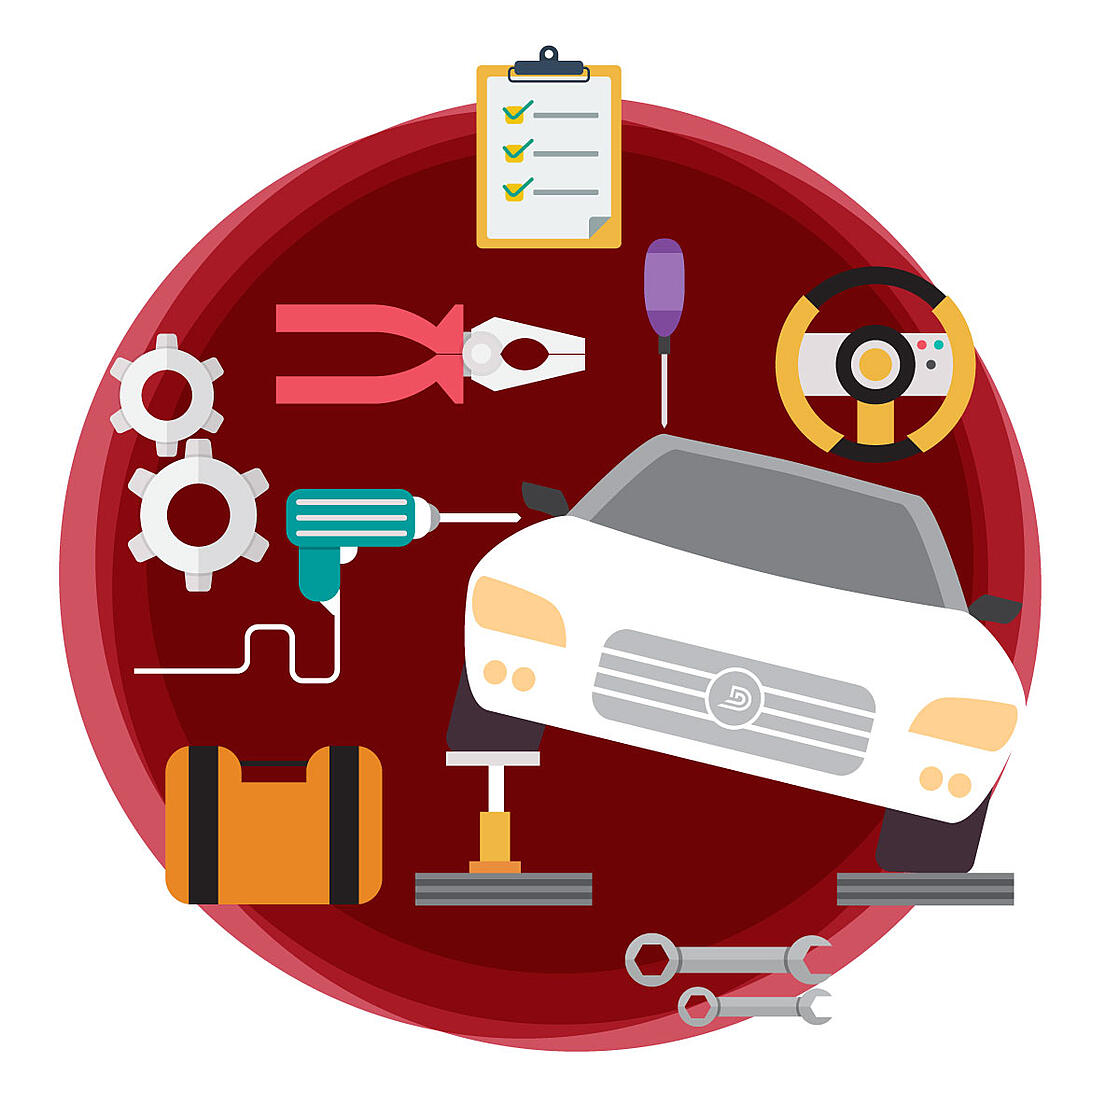 animated image of a car at the service department. Service CRM icons surround the car against a red circular background